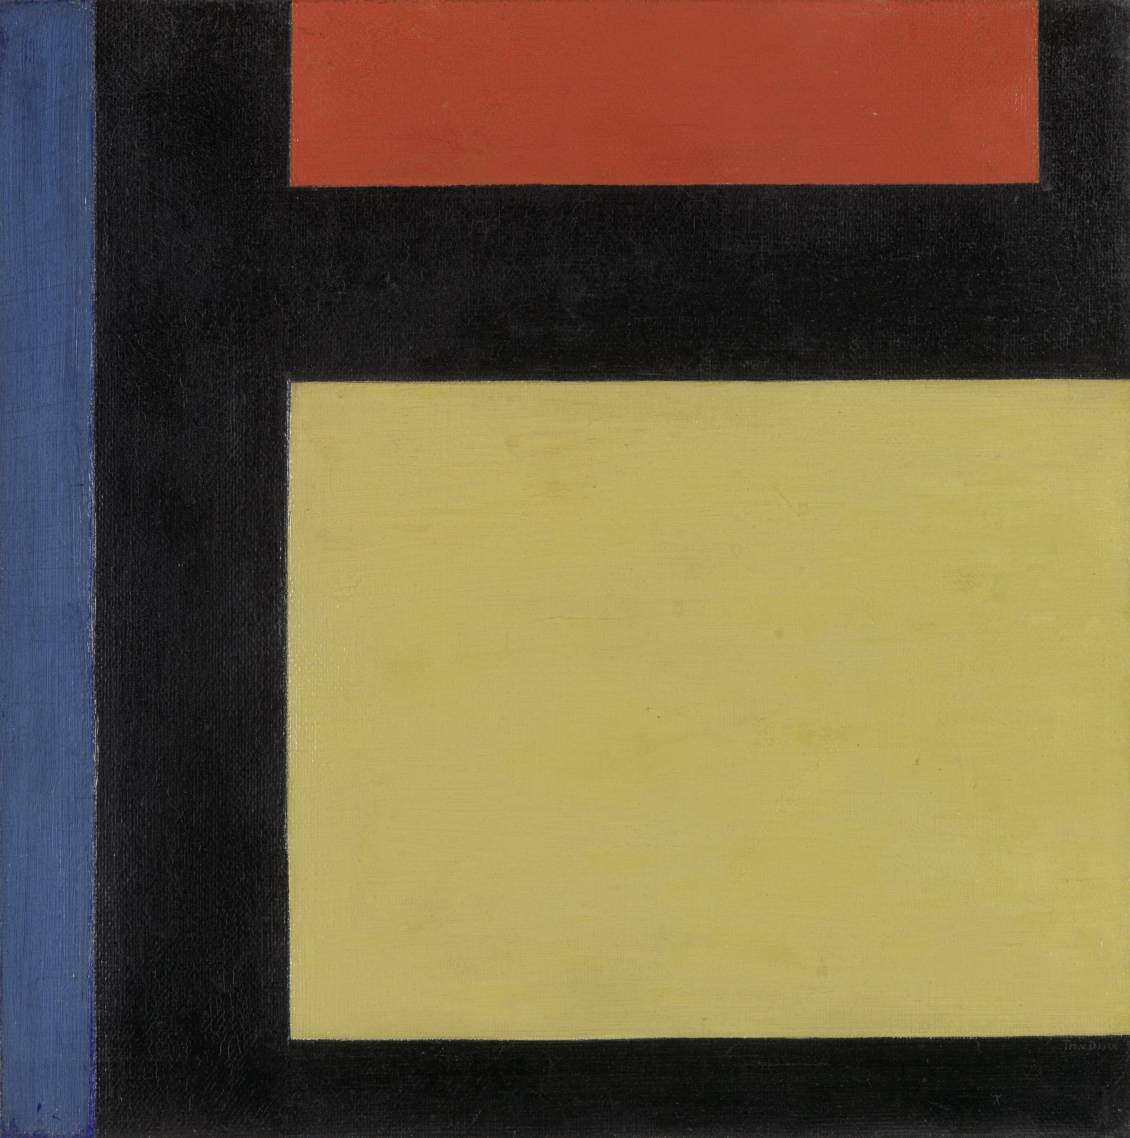 Theo van Doesburg, Contra-composition X, 1924